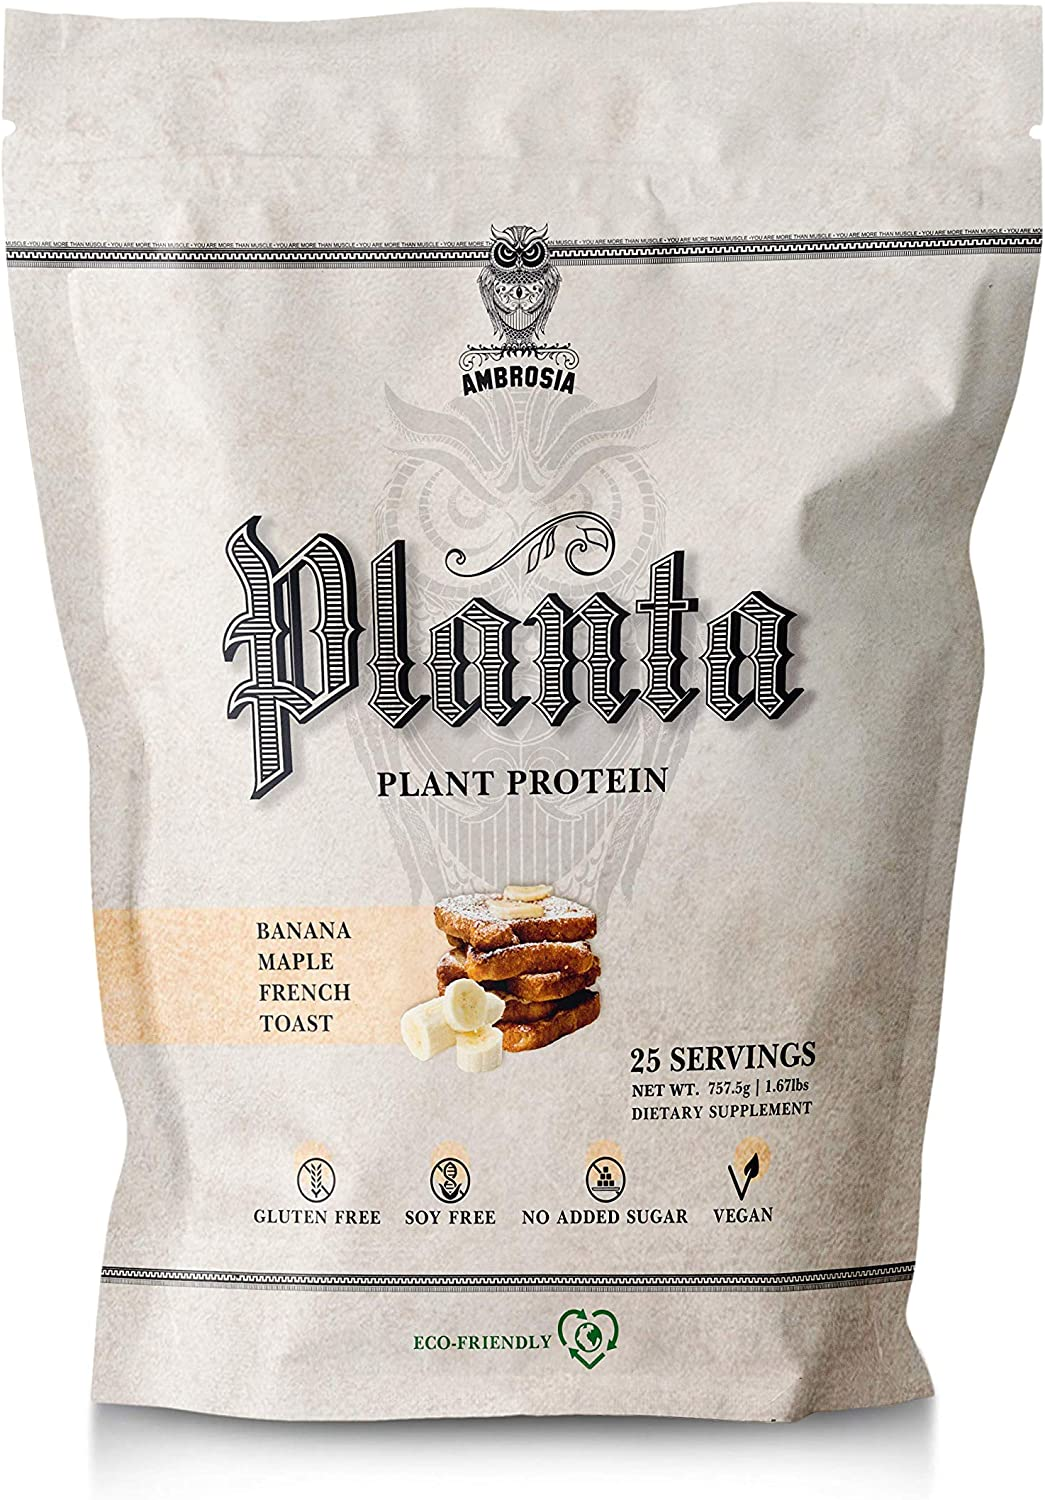 Ambrosia Planta – Premium Organic Plant-Based Protein Vegan Keto Friendly Gourmet Flavors with No Bloating or Stomach Upset Gluten Soy Free No Added Sugar 25 Servings Banana Maple